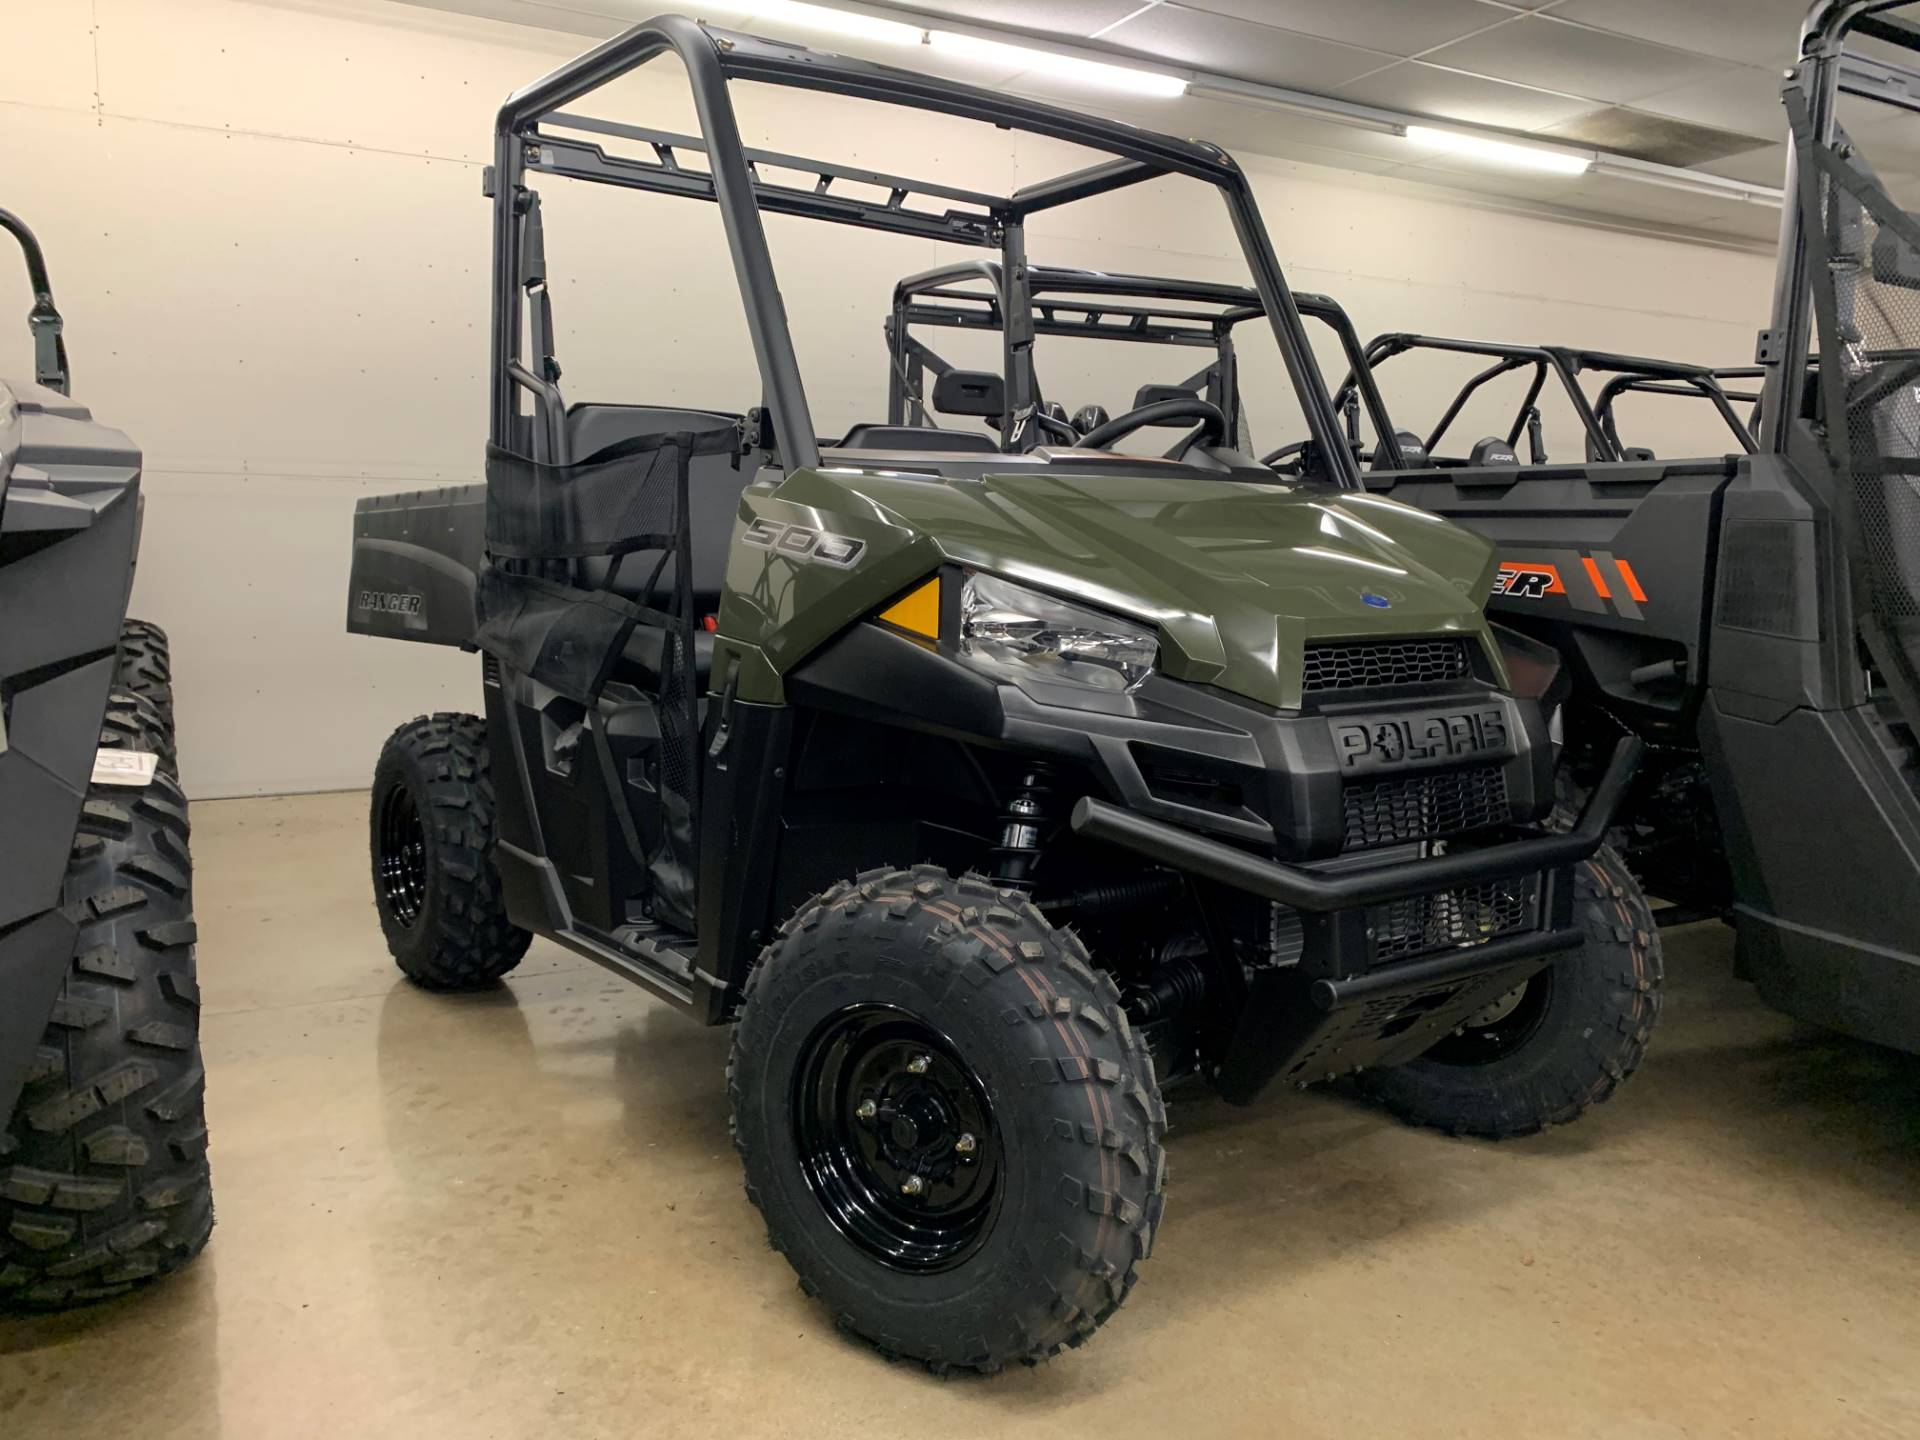 2020 Polaris Ranger 500 in Chicora, Pennsylvania - Photo 2